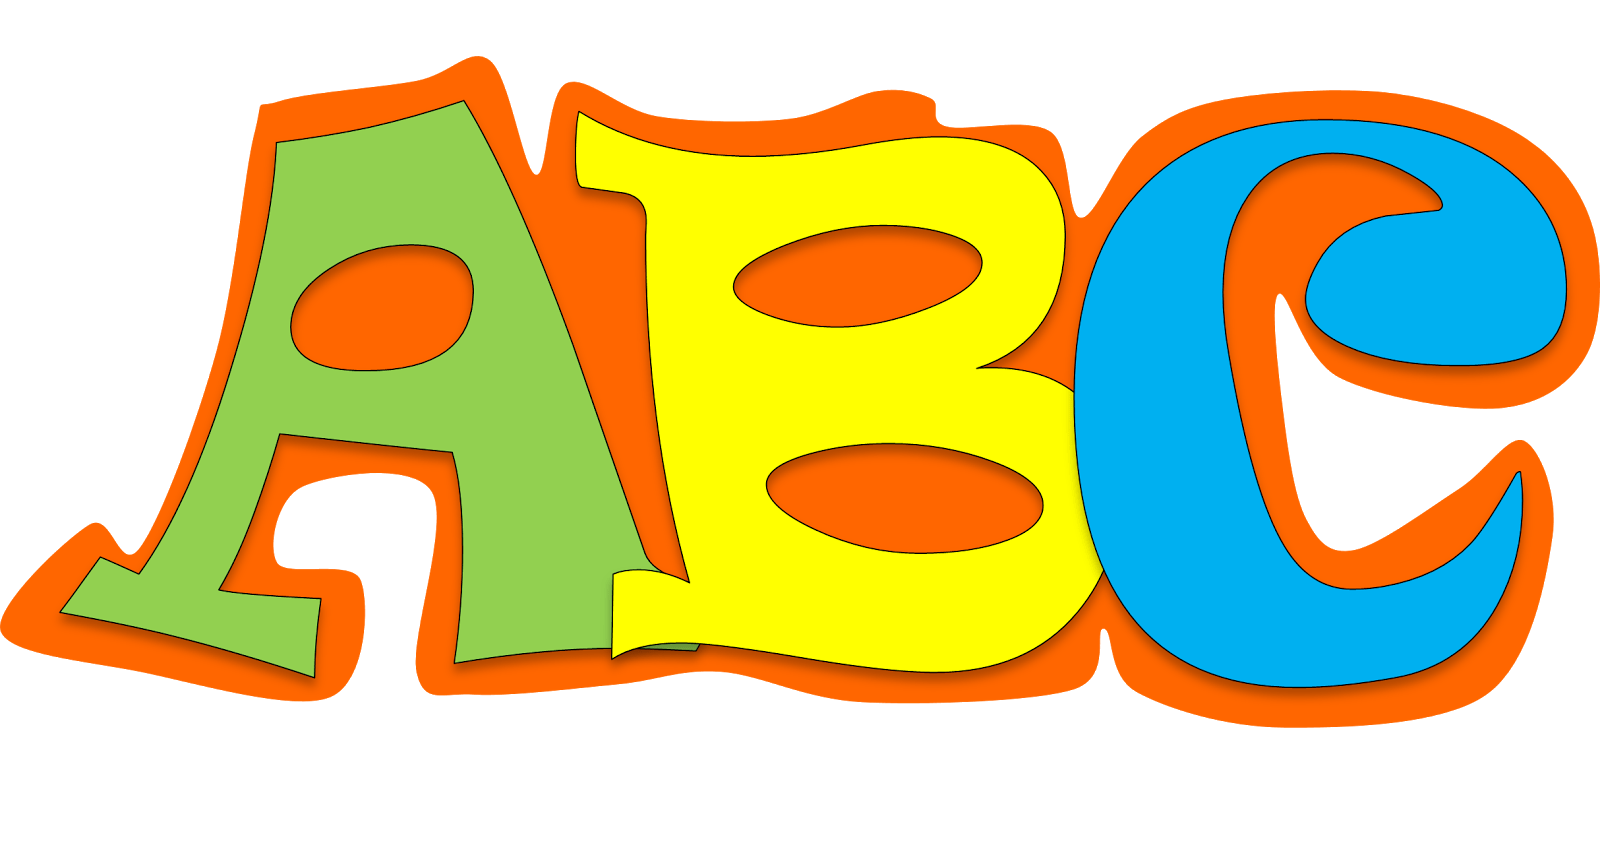 Abc Clip Art png free download